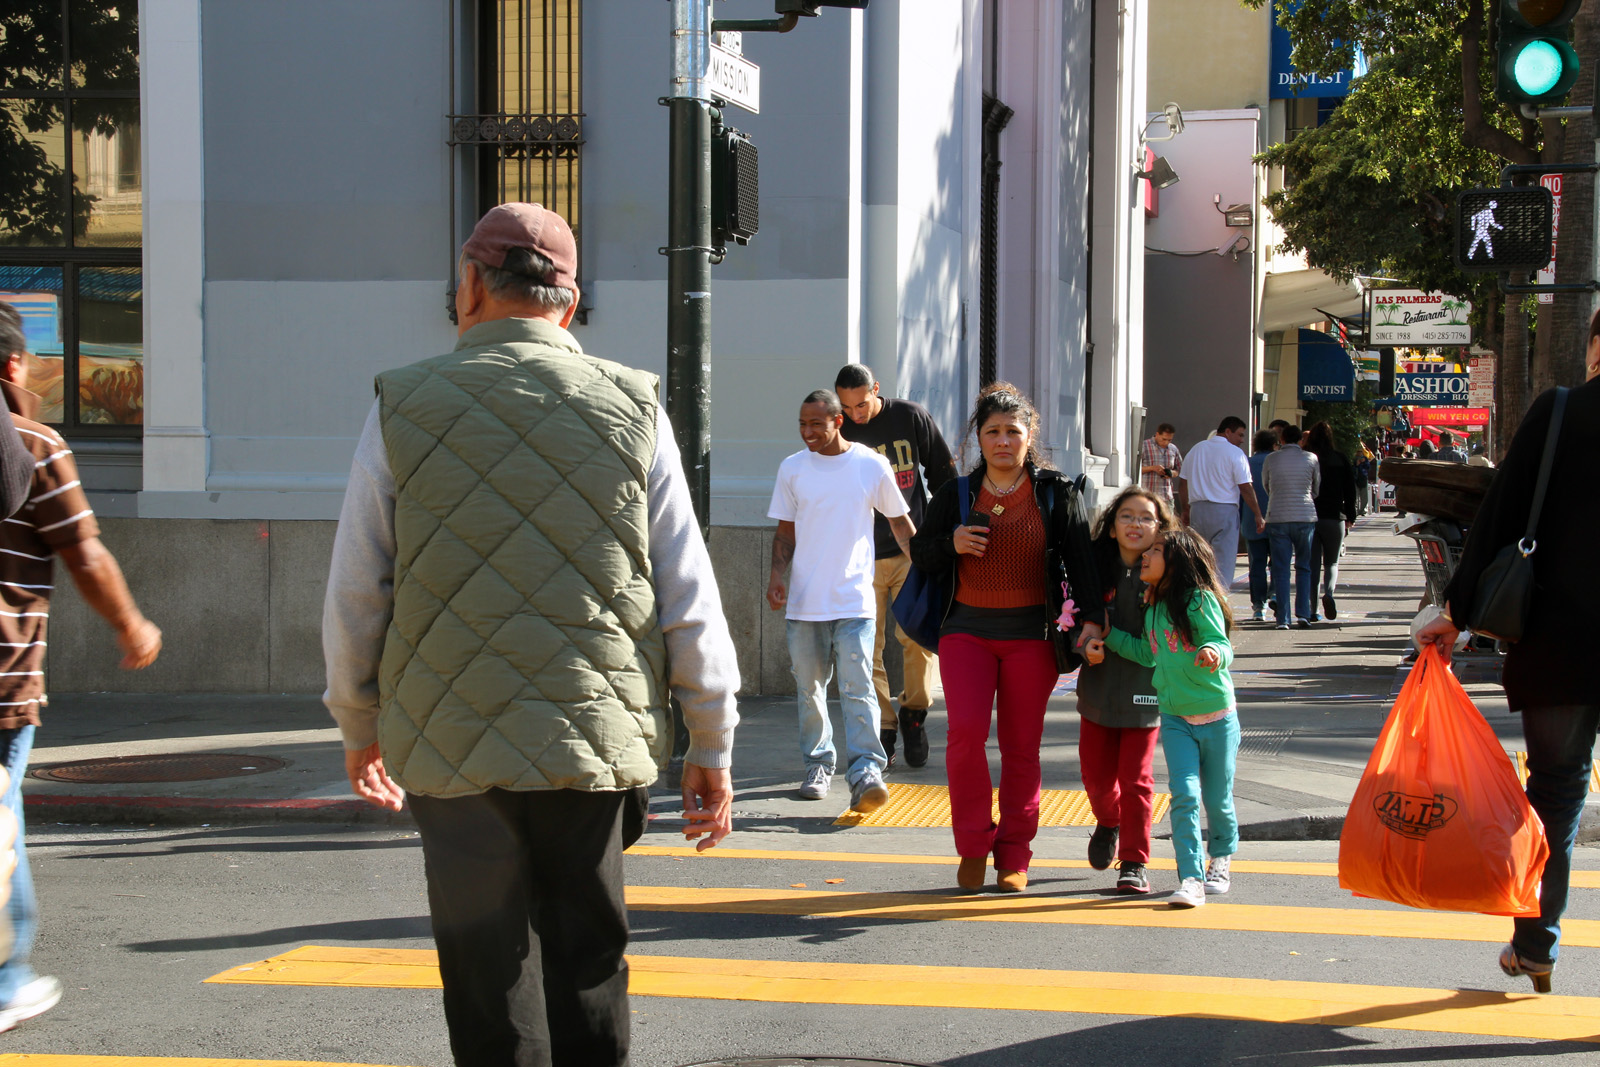 The busy intersection of Mission and 21st St.